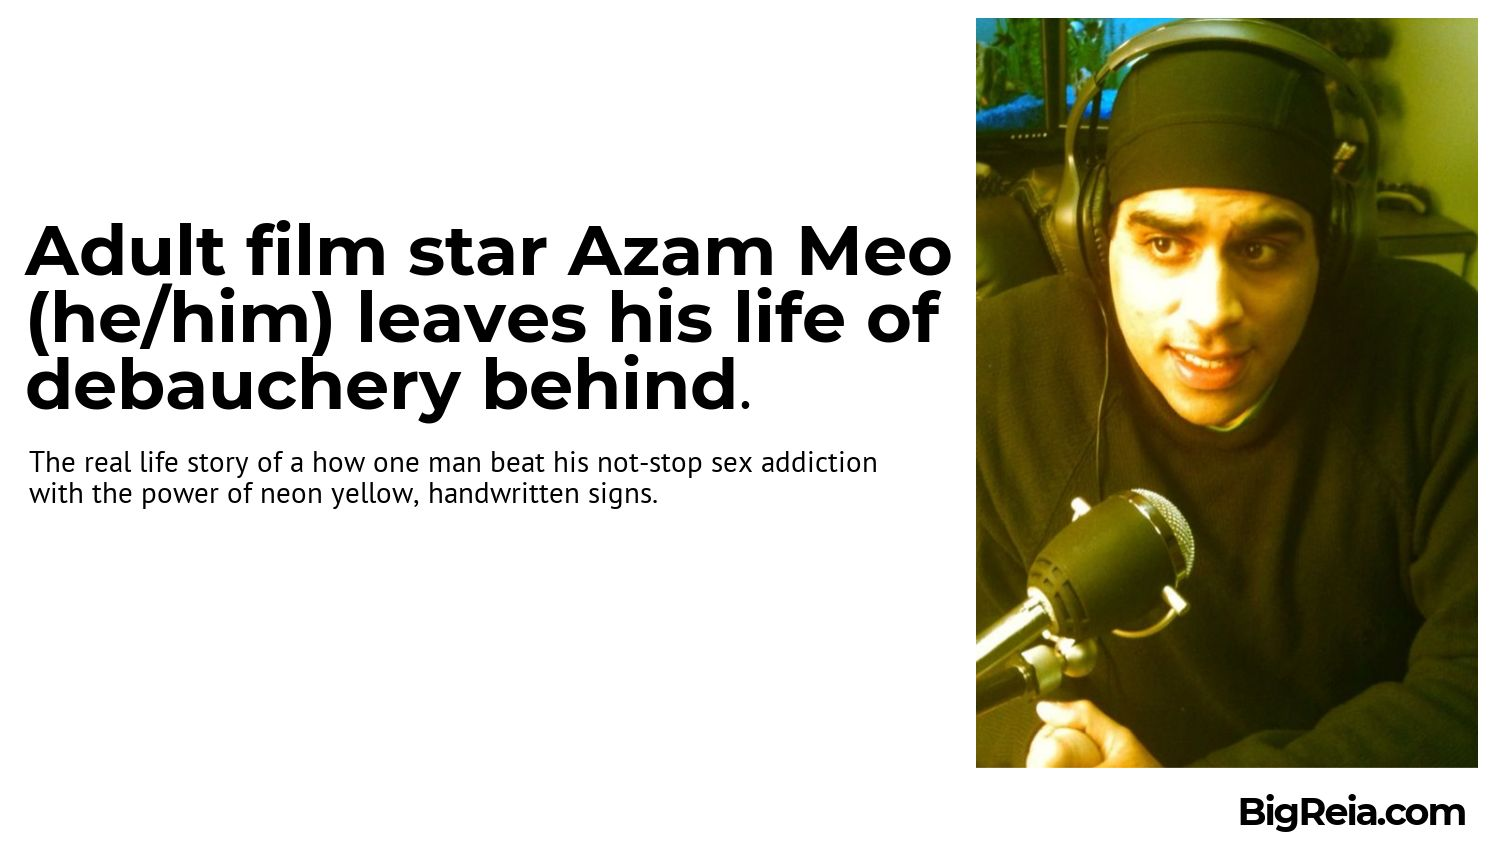 Azam Meo the beautiful adult film star